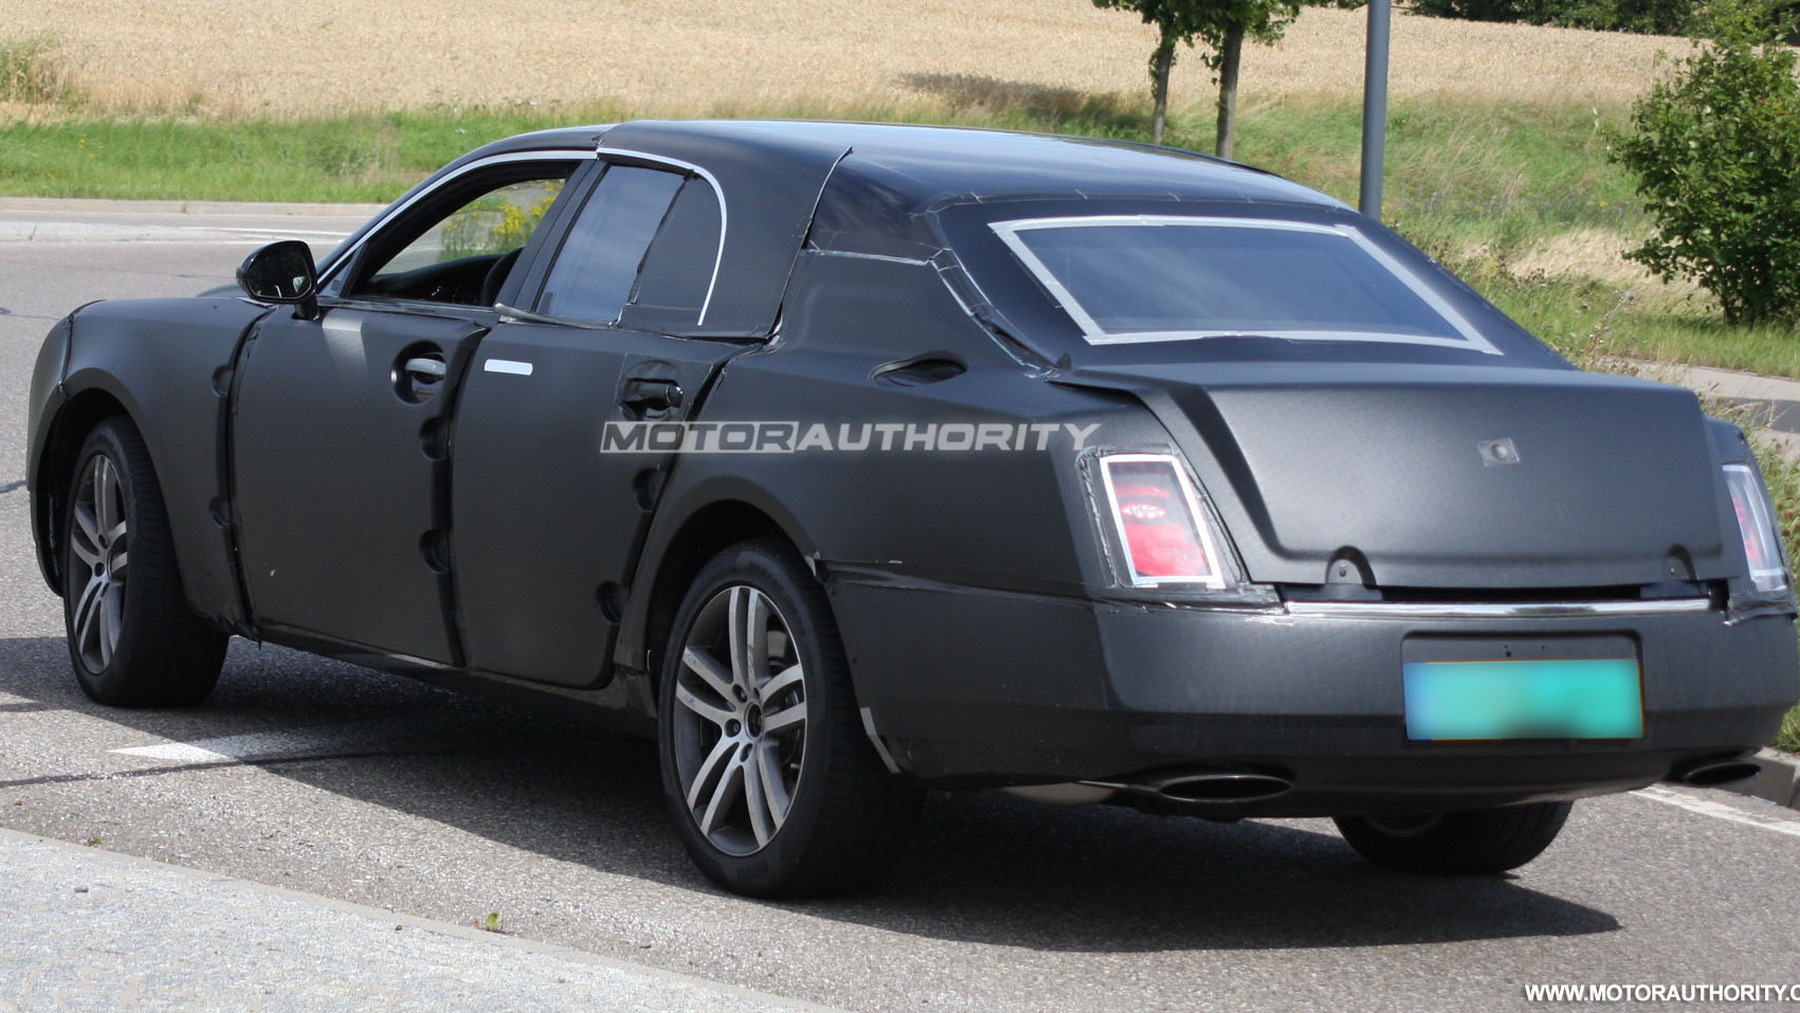 2010 grand bentley arnage replacement spy shots july 004